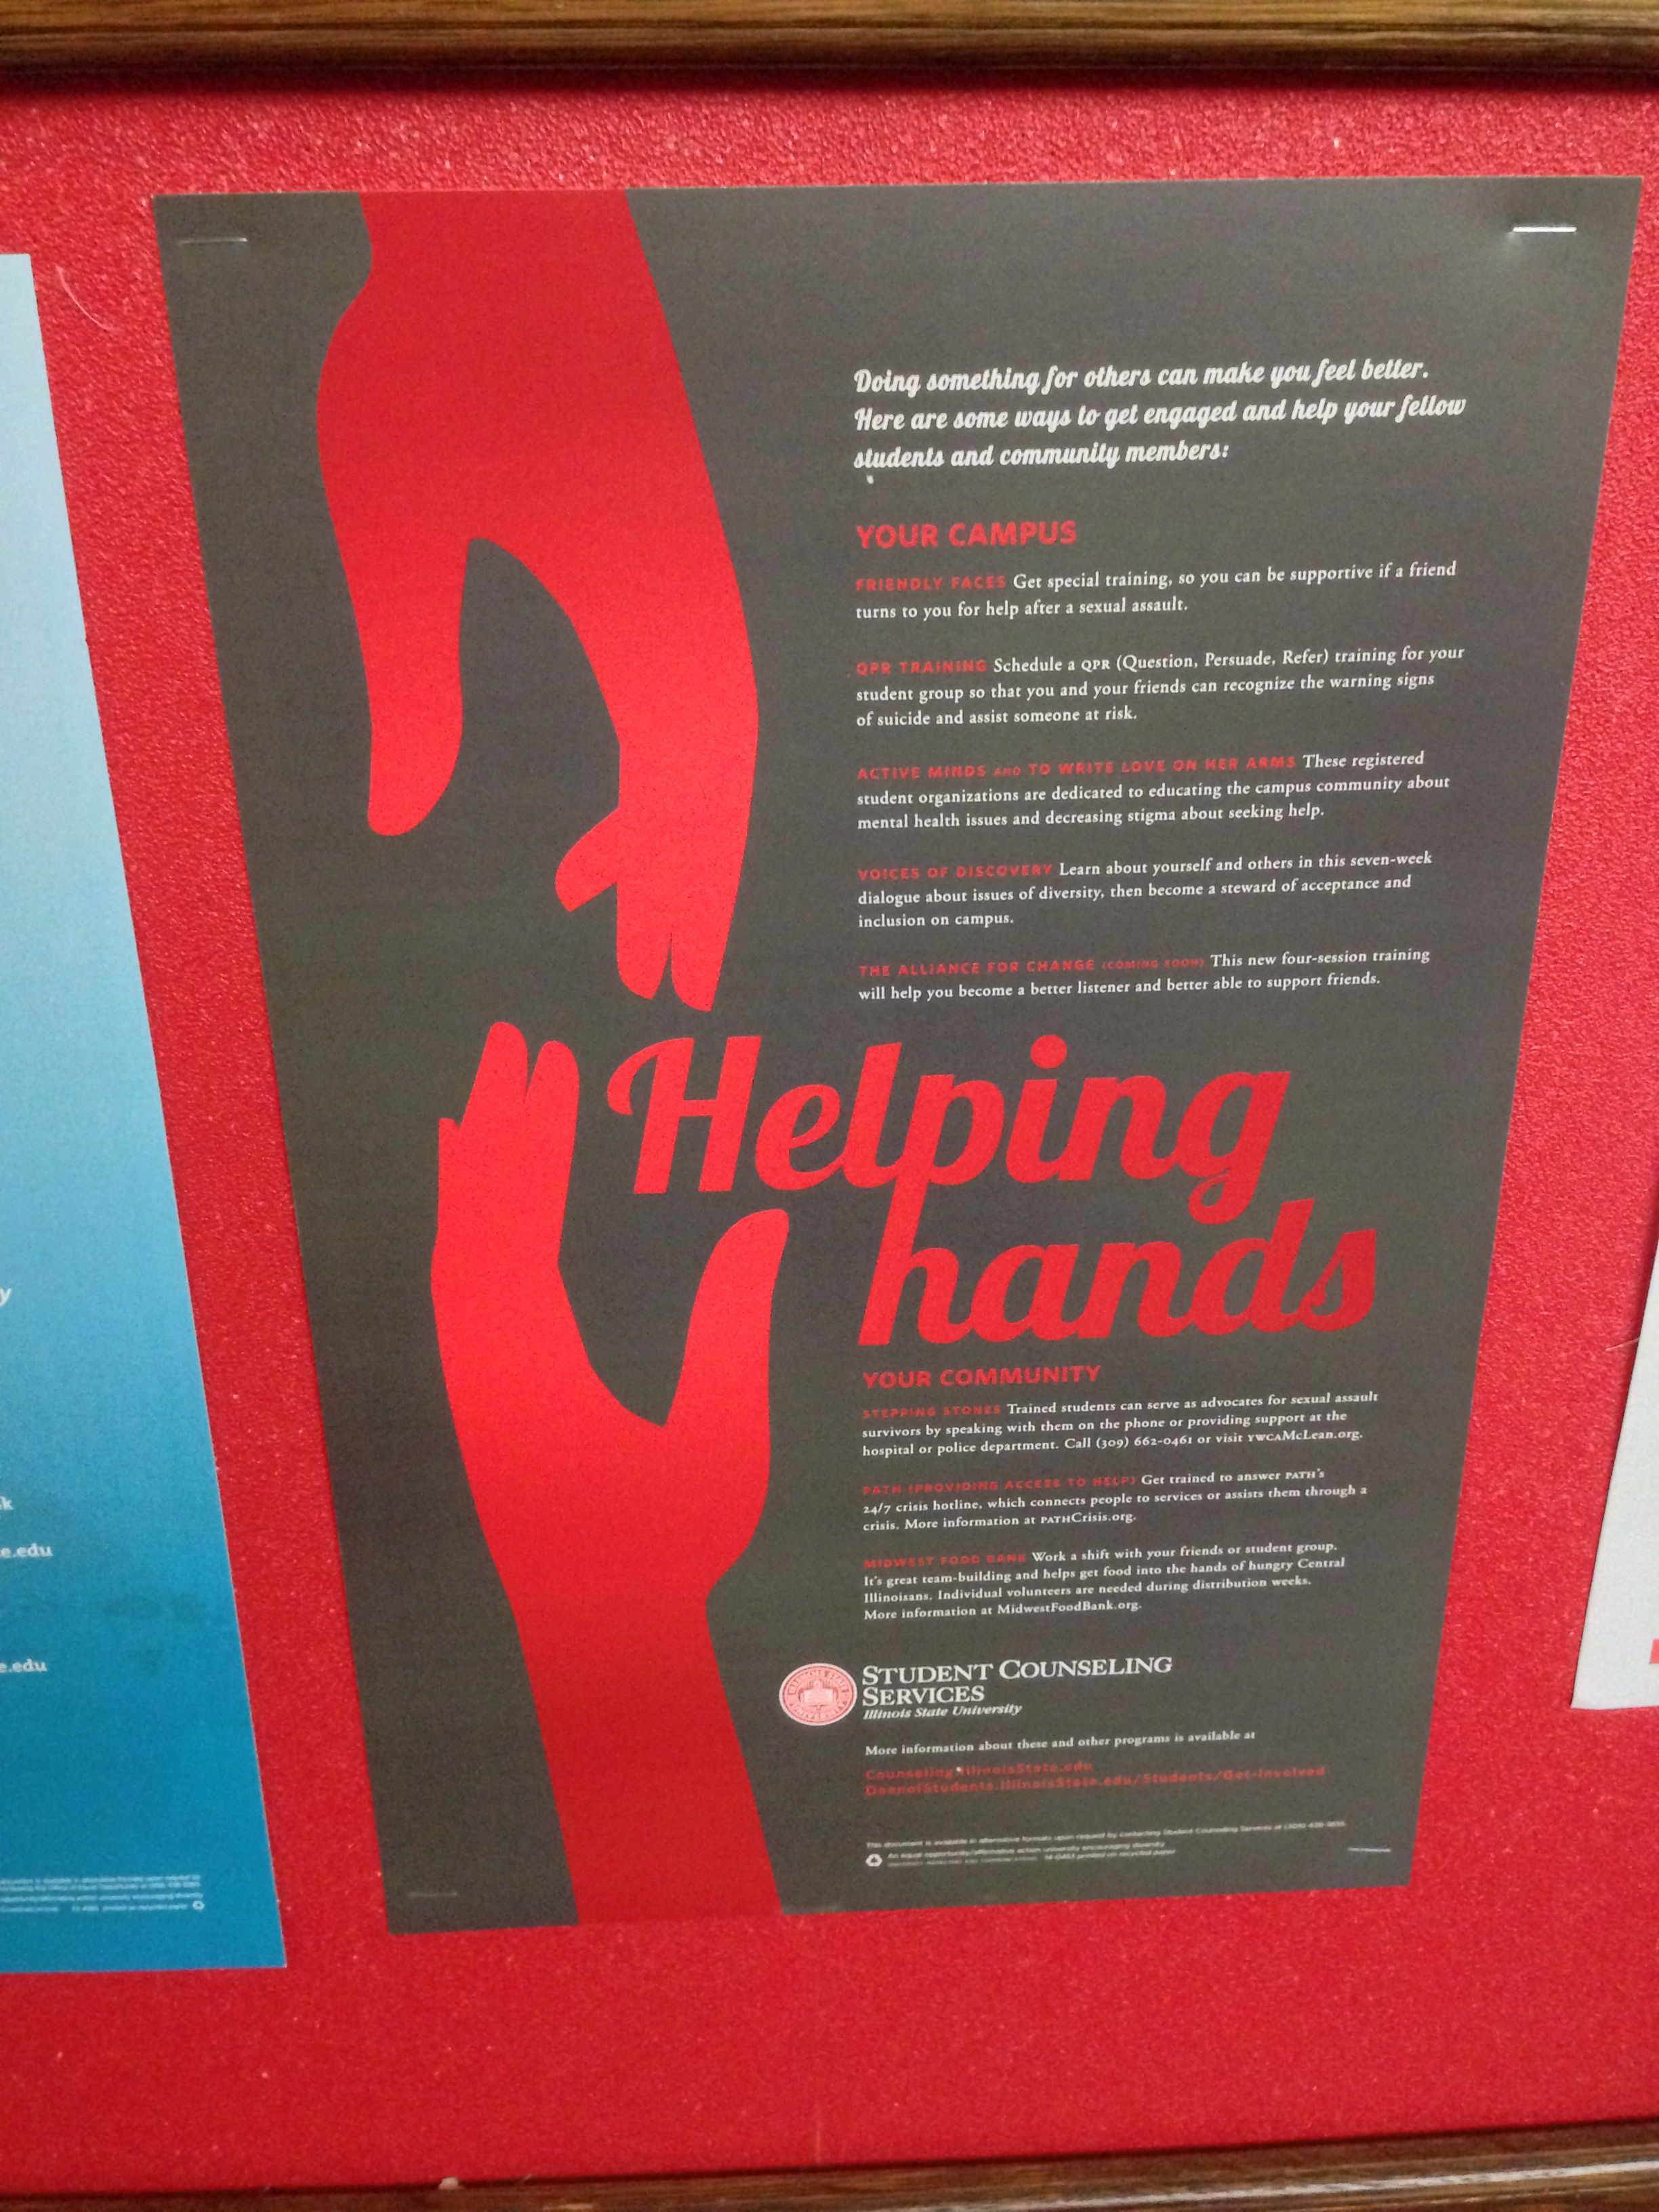 Student Counseling Services Helping Hands Poster Love Design Student Helping Hands